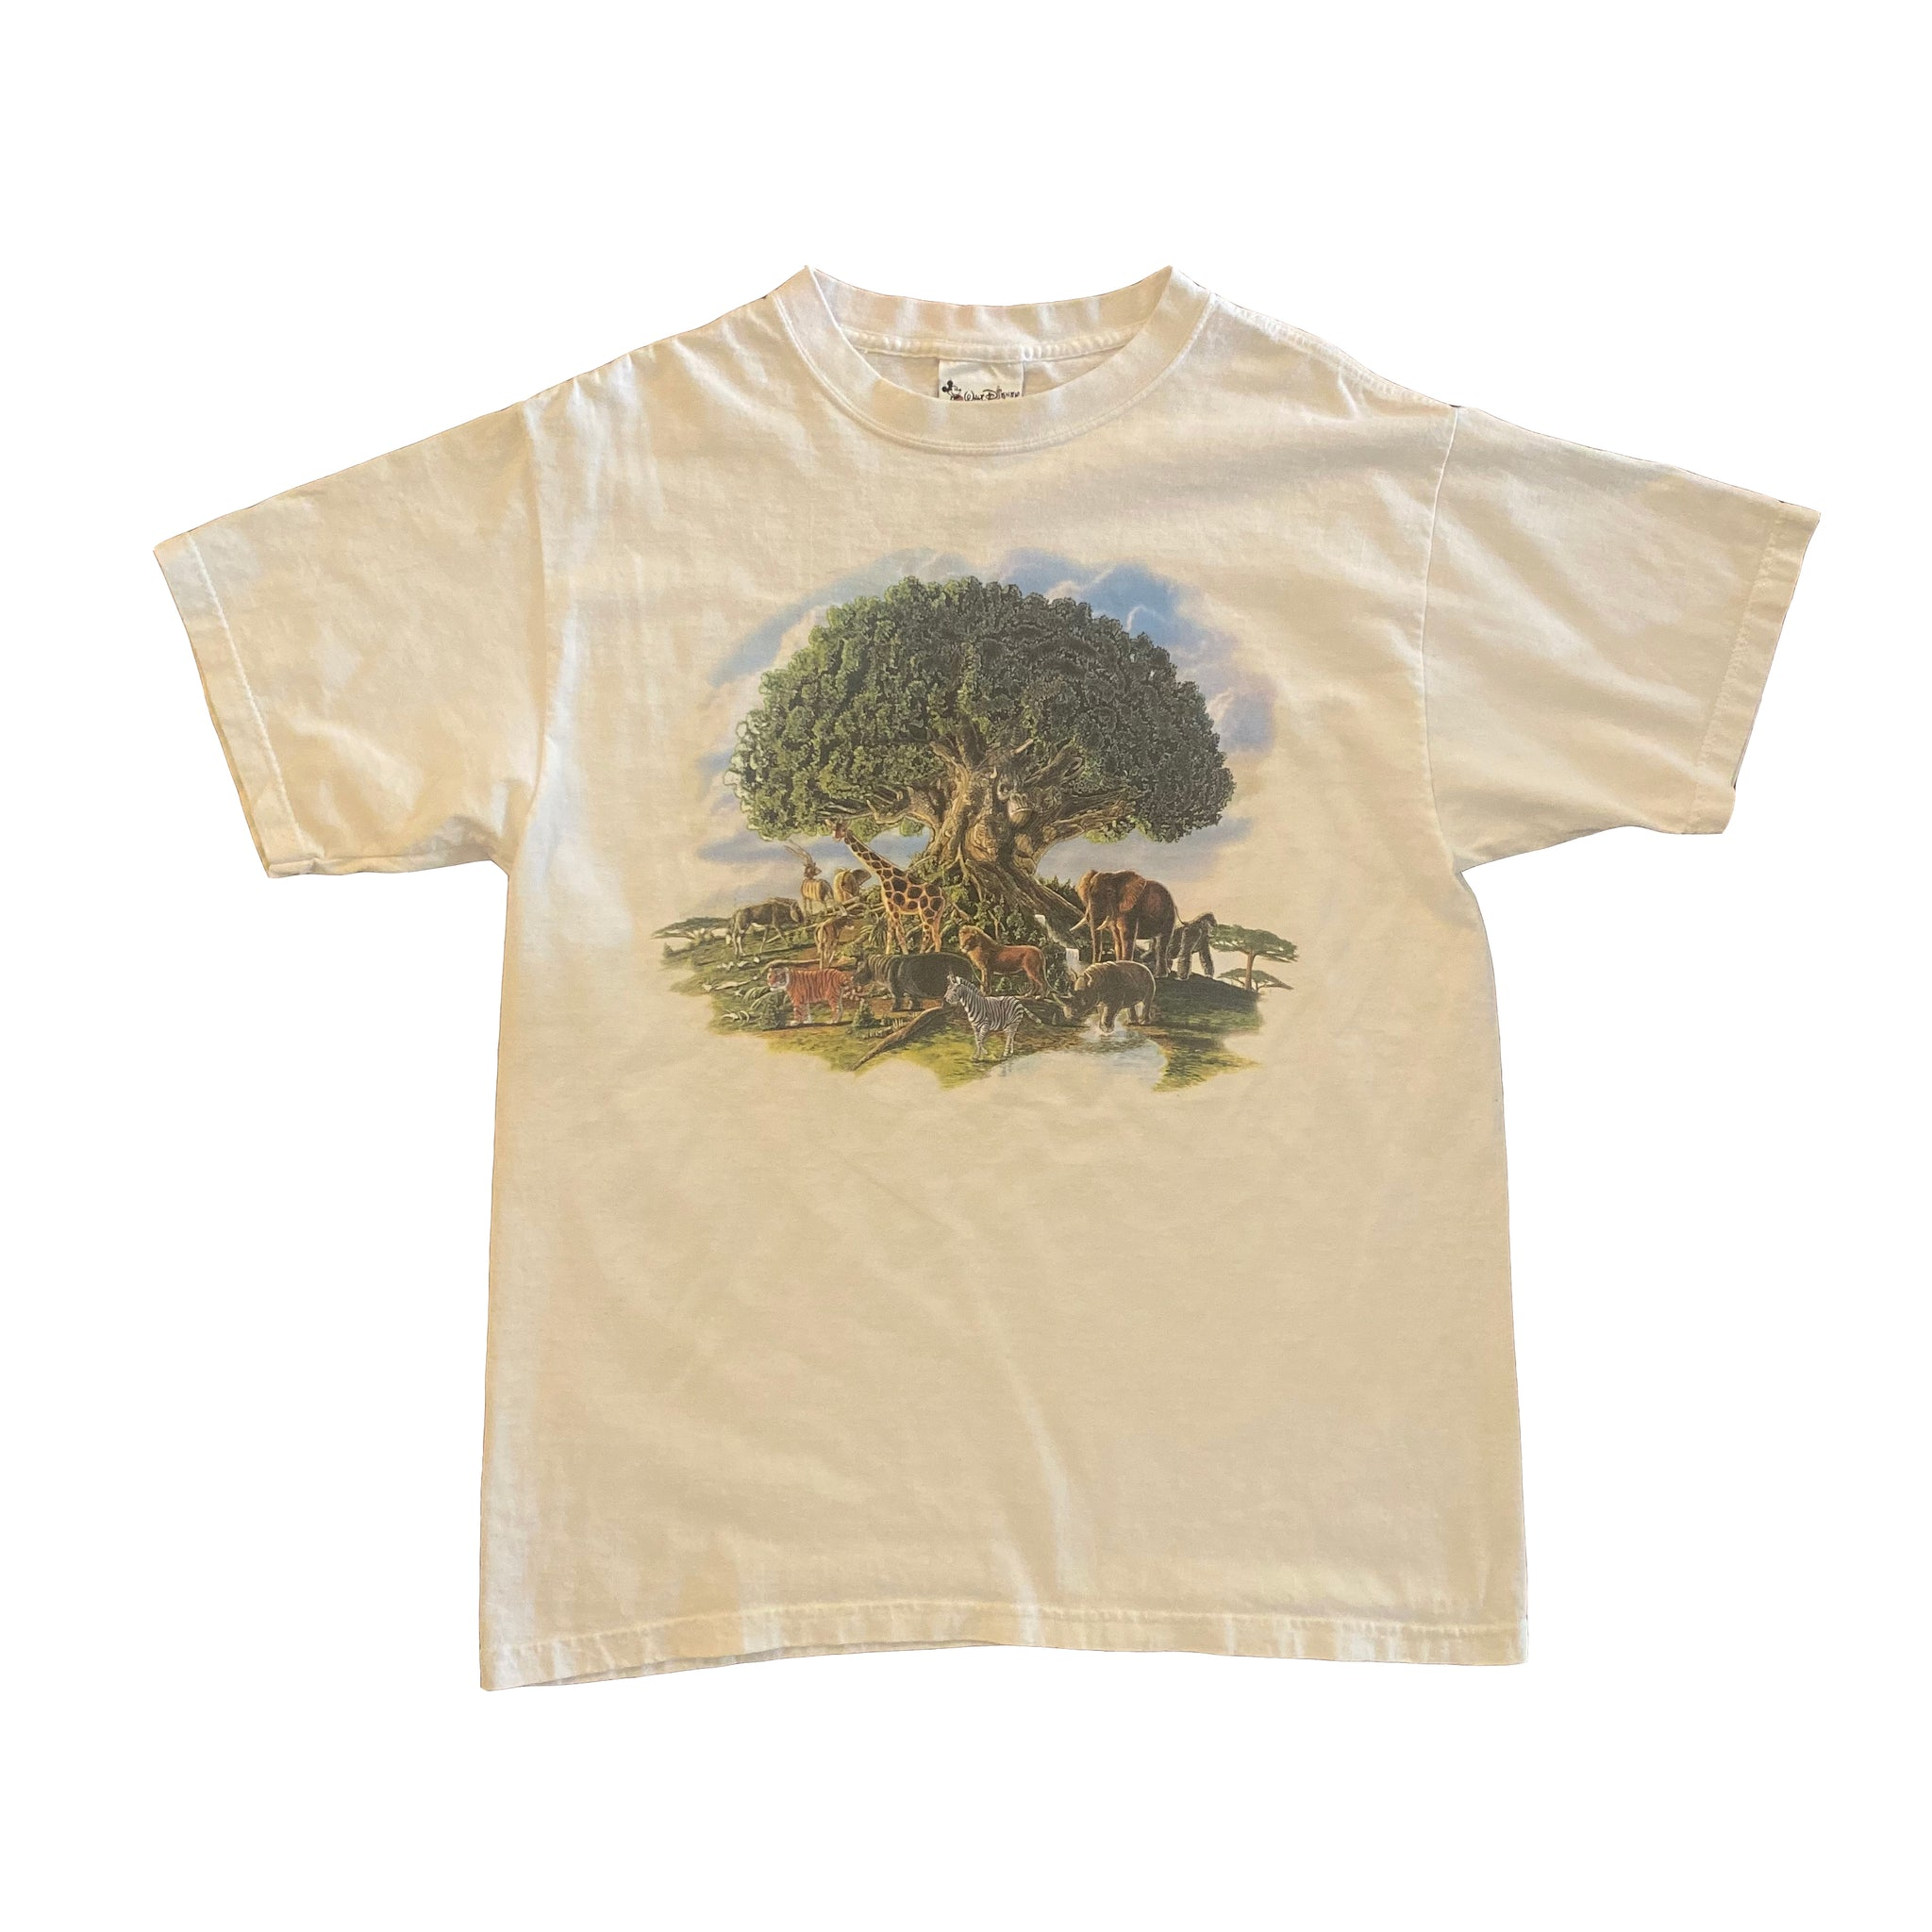 Animal Kingdom - M/L - VTG 90s